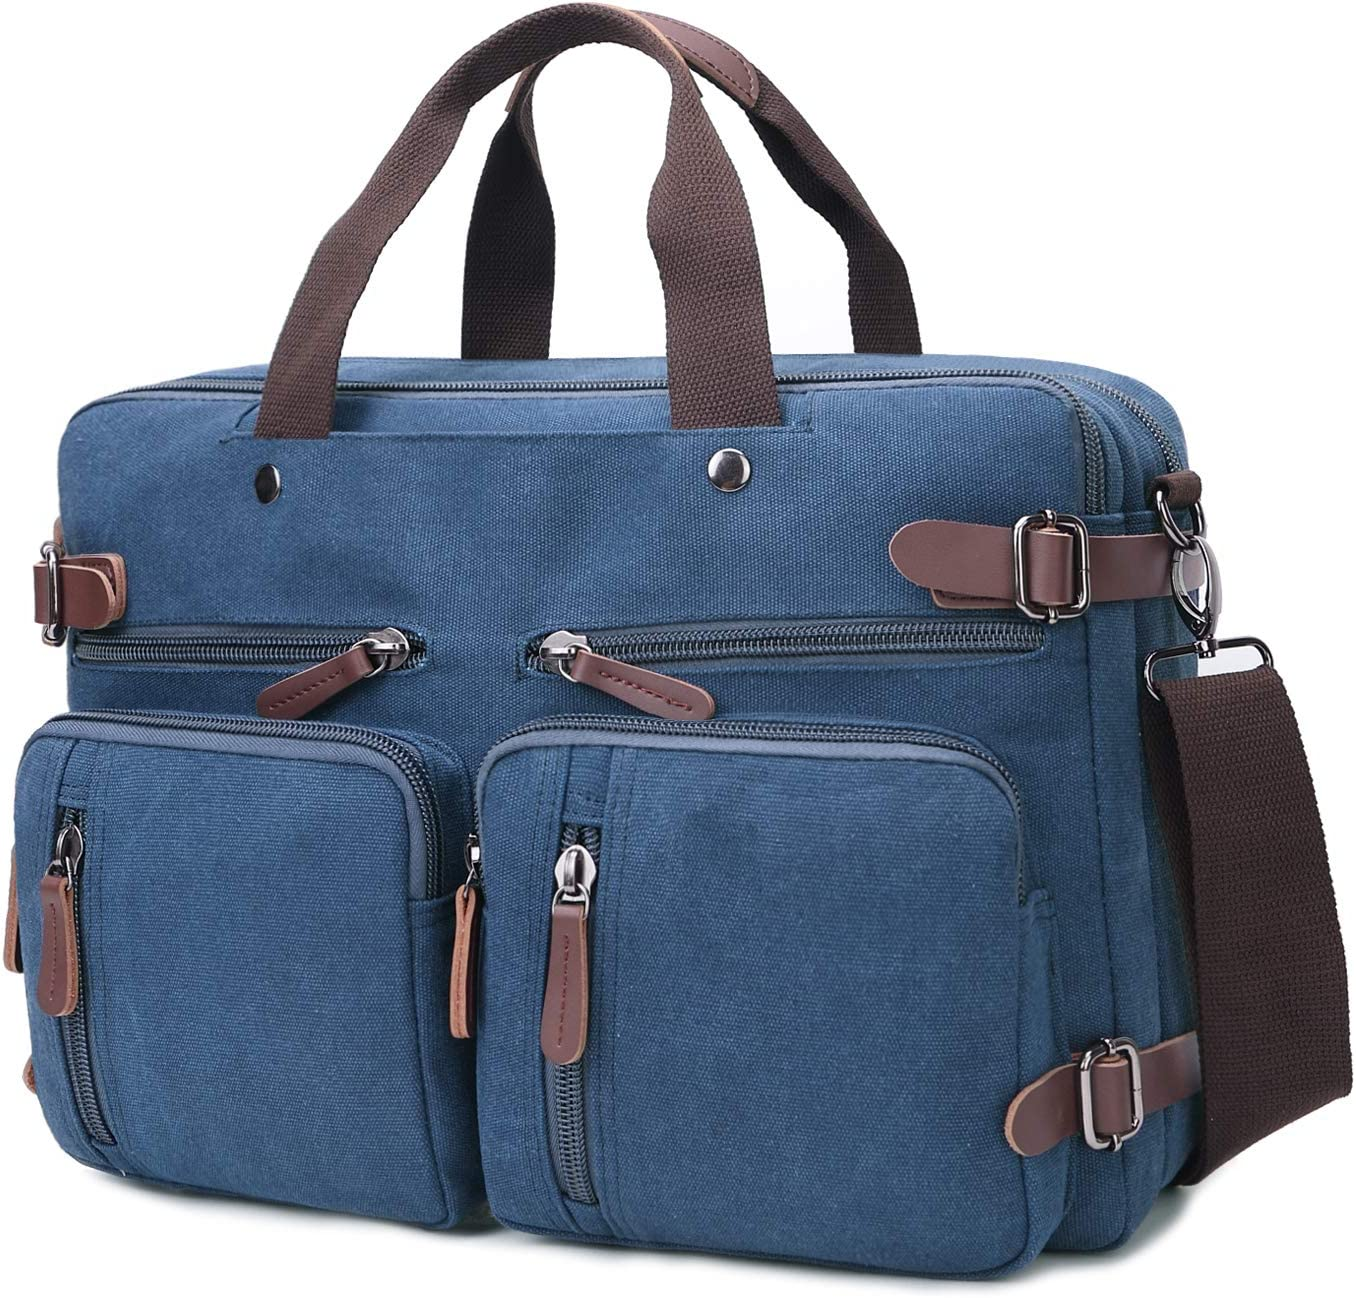 Convertible Laptop Backpack 15.6 Inch Messenger Bag for Men/Women (15.6 Inch, Blue)